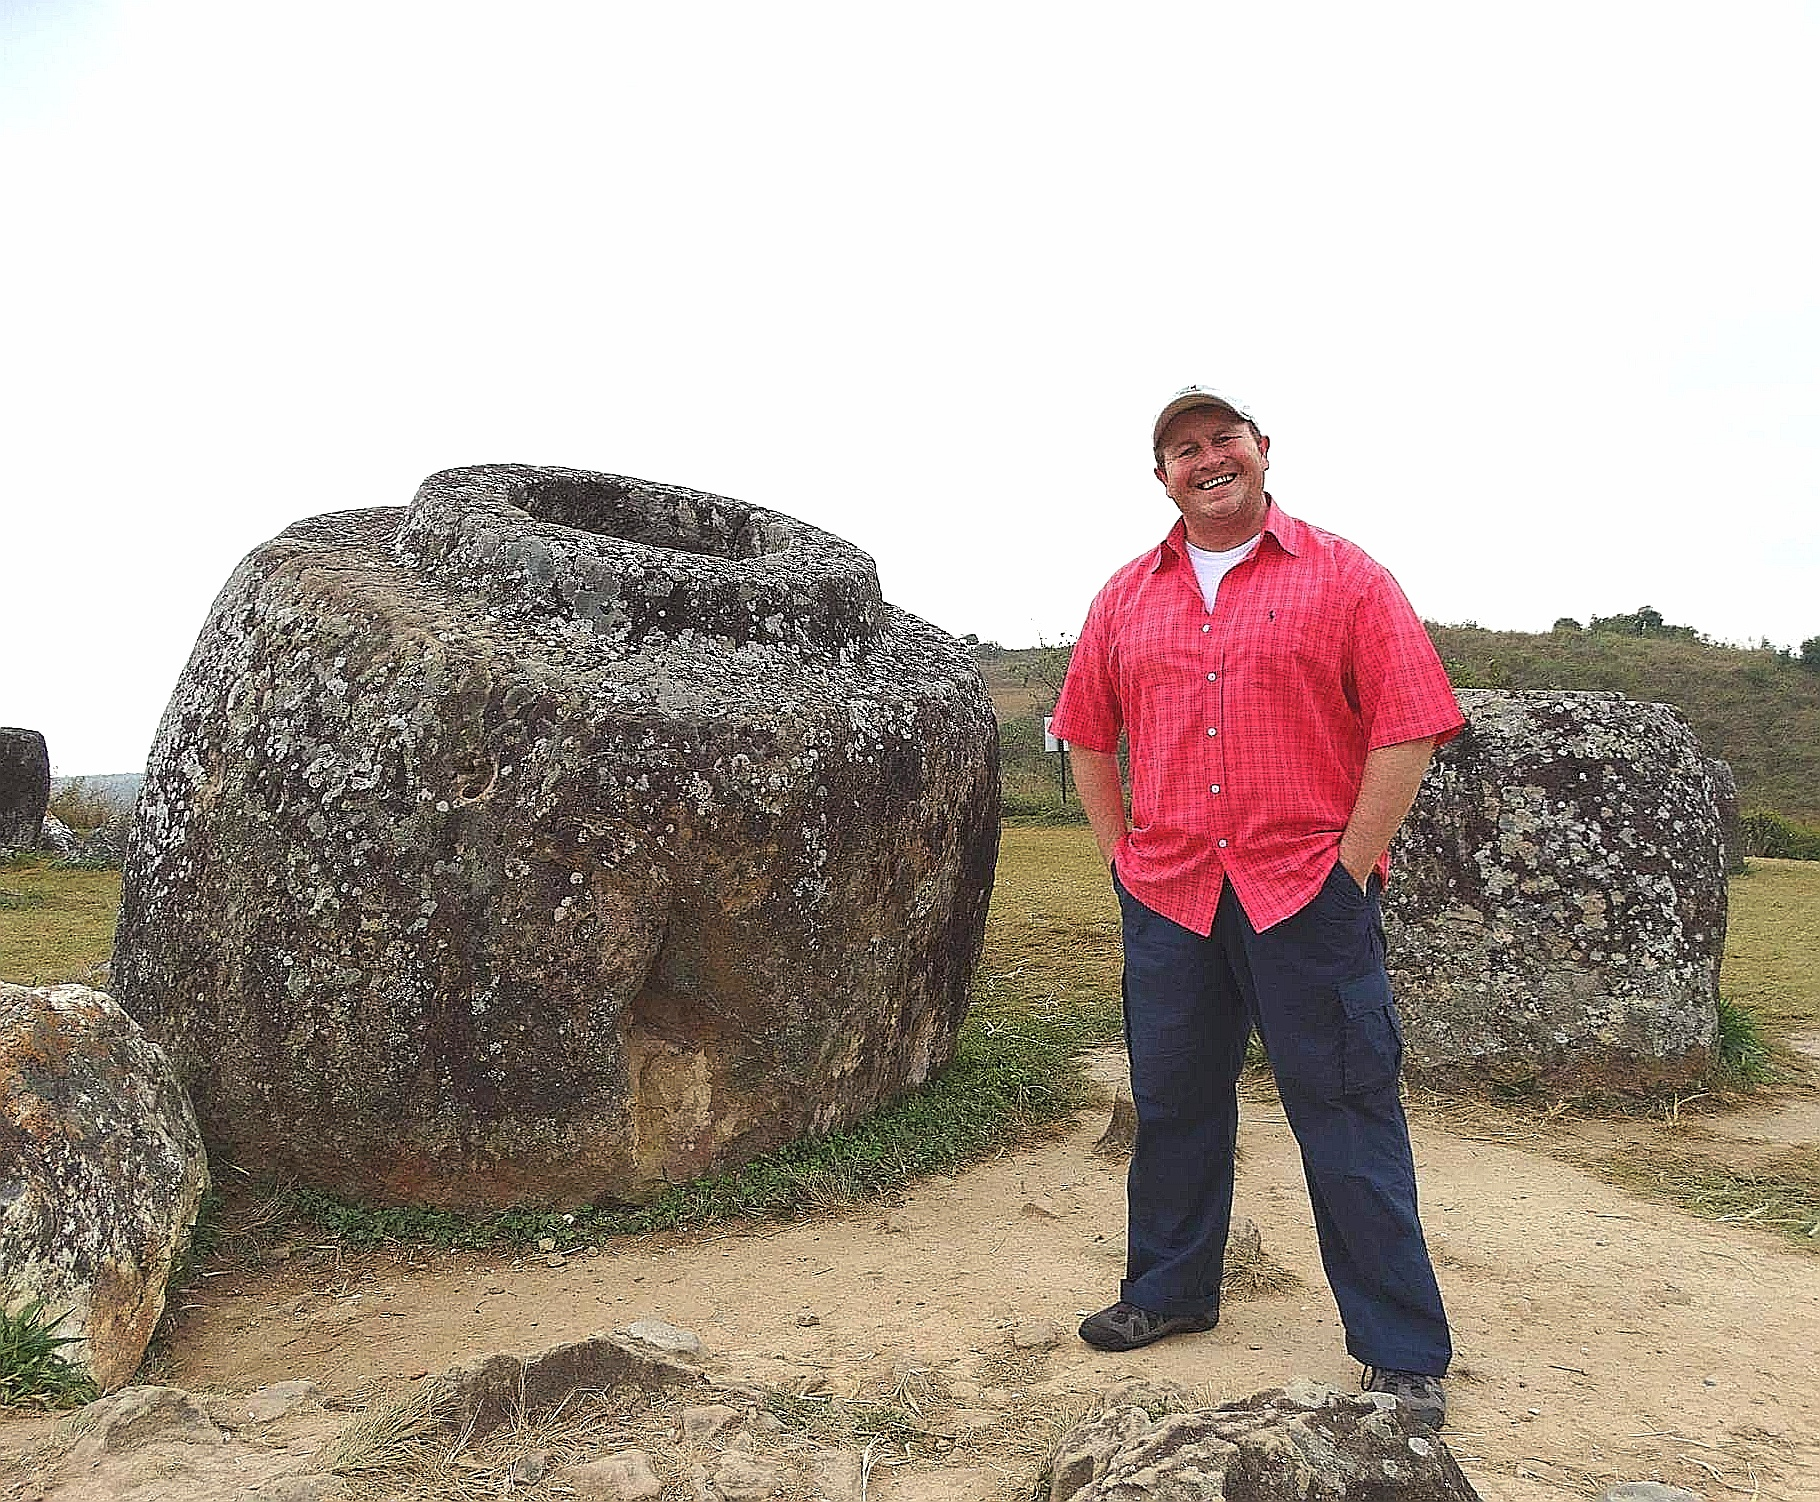 Ban Phonsavan, Laos. The eerie 2,500 year old, 'Plain of Jars'